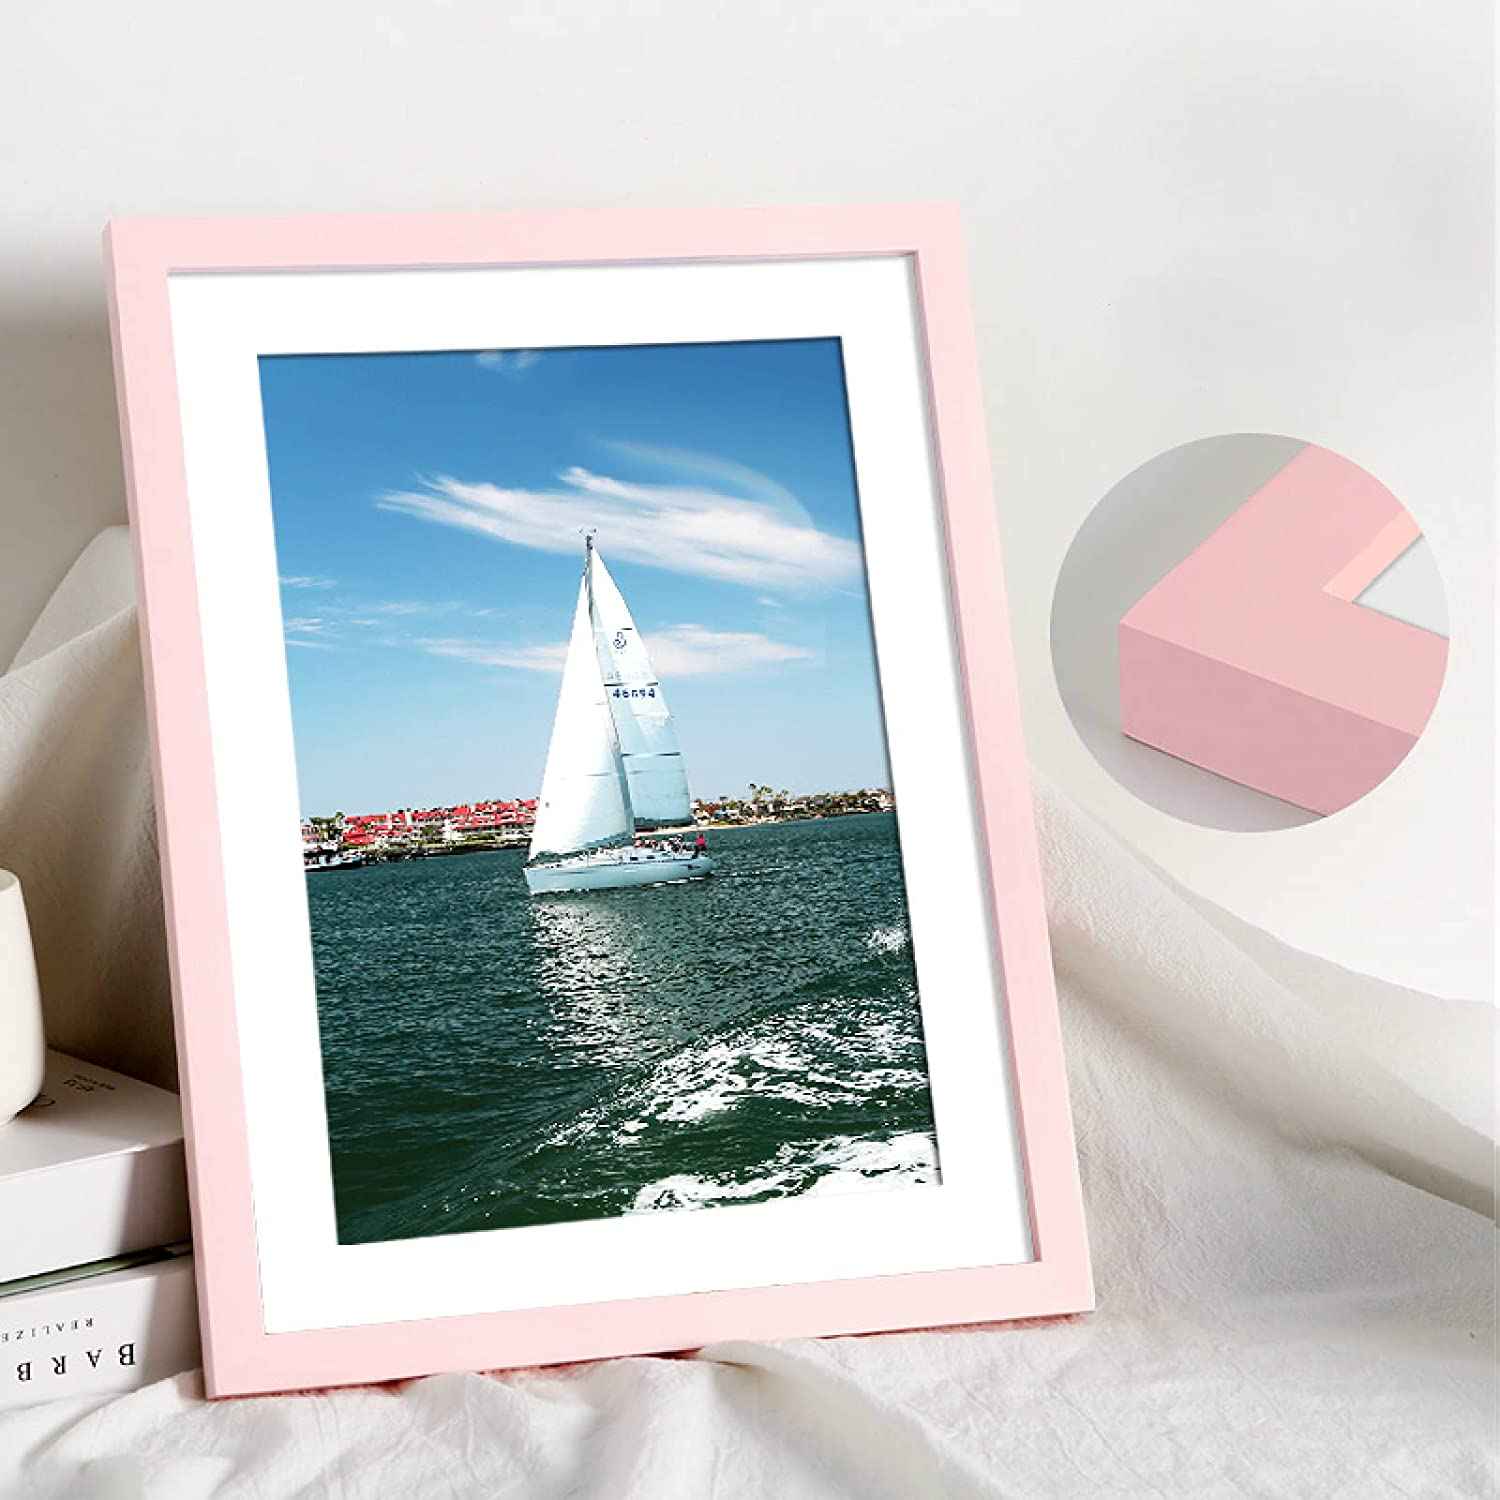 LZYMLG Picture Frame Solid Wood Poster Mounting Max El Paso Mall 78% OFF Certificate Wall